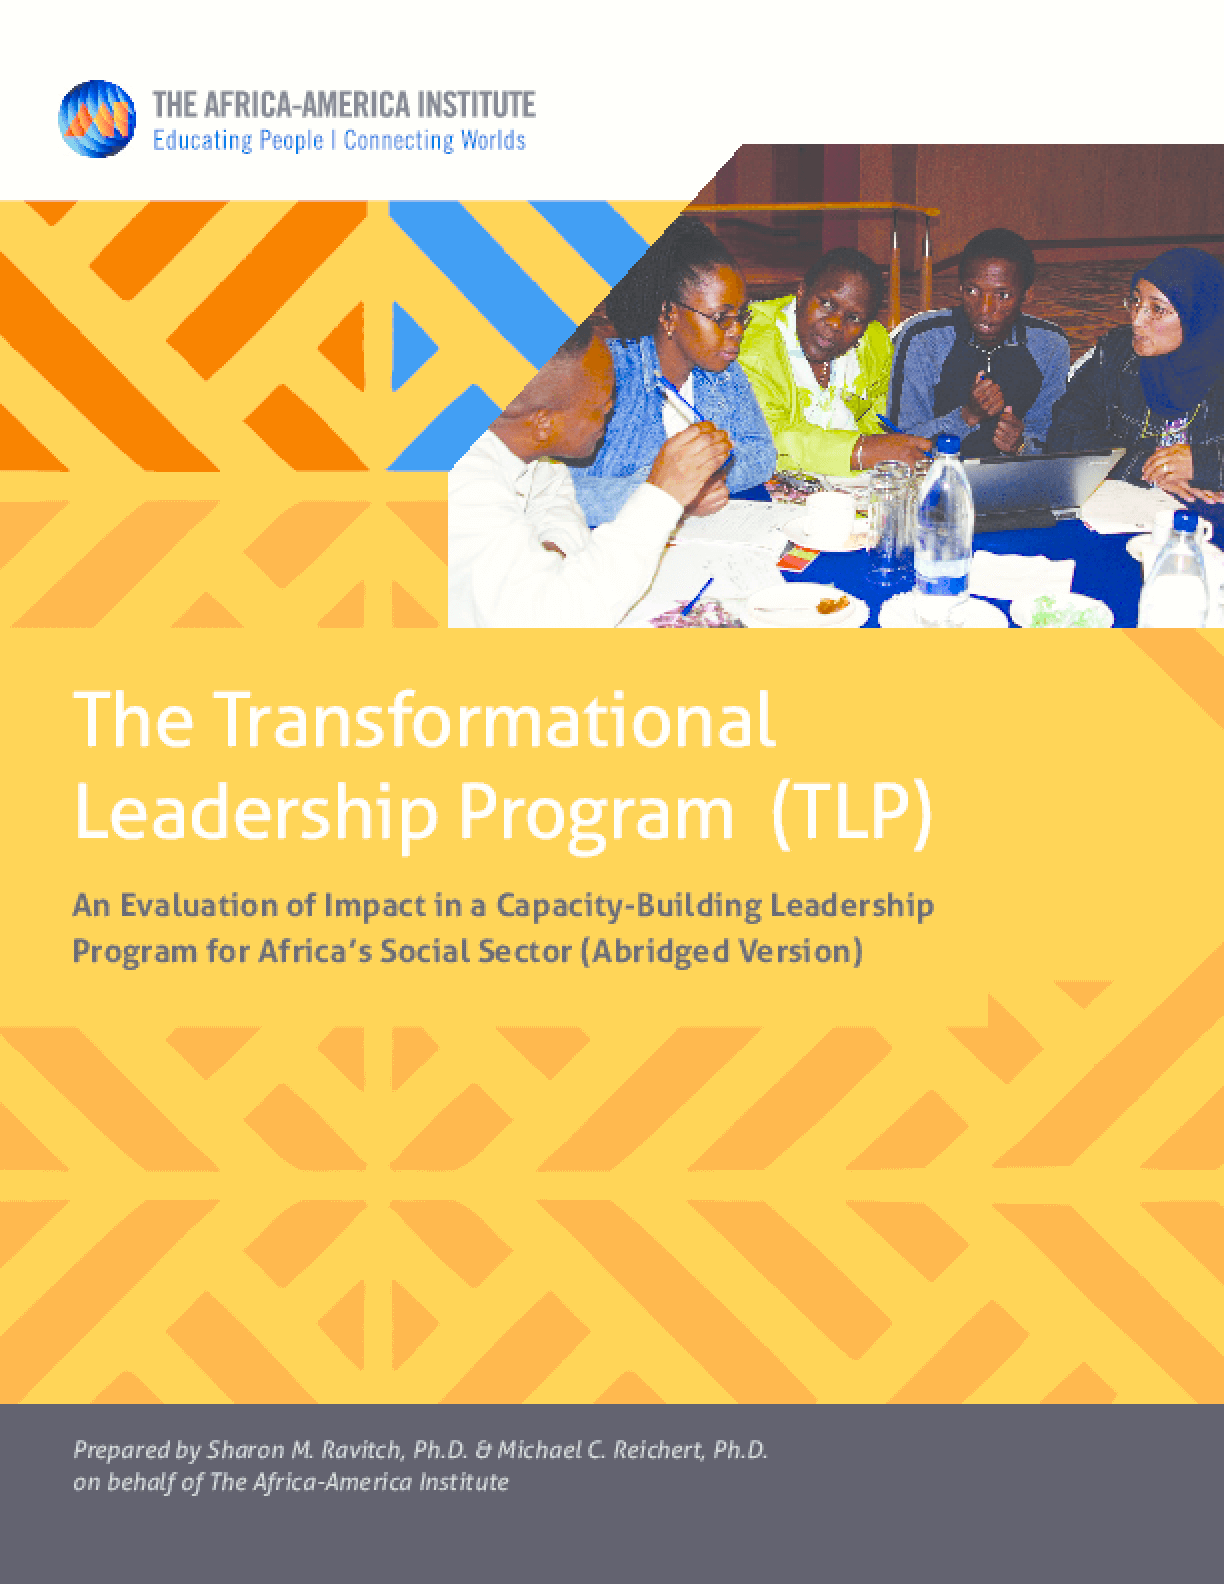 The Transformational Leadership Program (TLP): An Evaluation of Impact in a Capacity-Building Leadership Program for Africa's Social Sector (Abridged Version)